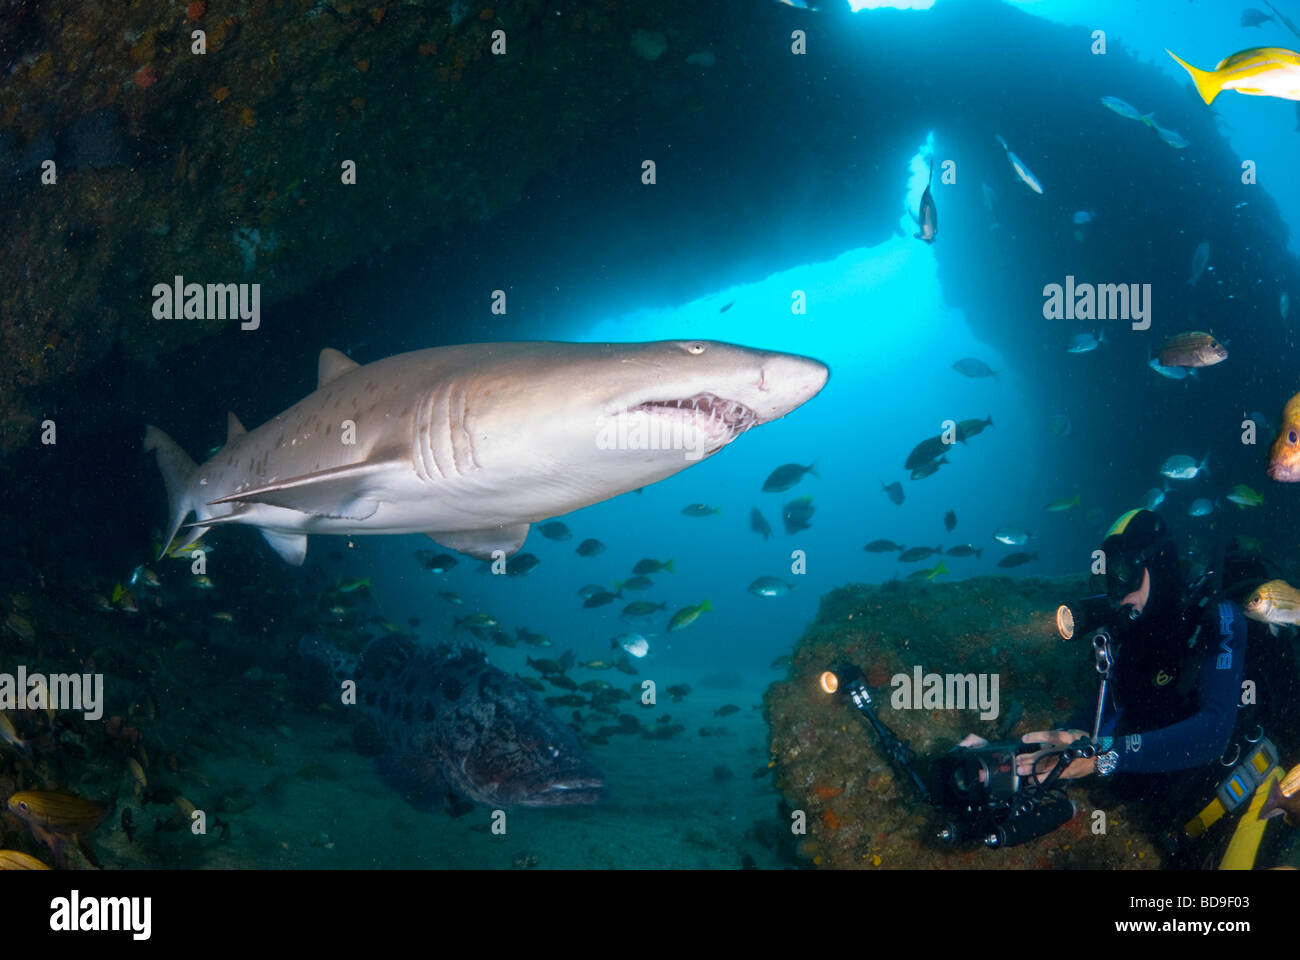 Ragged tooth shark or Sand tiger (Carcharias taurus), Aliwal Shoal, South Africa - Stock Image